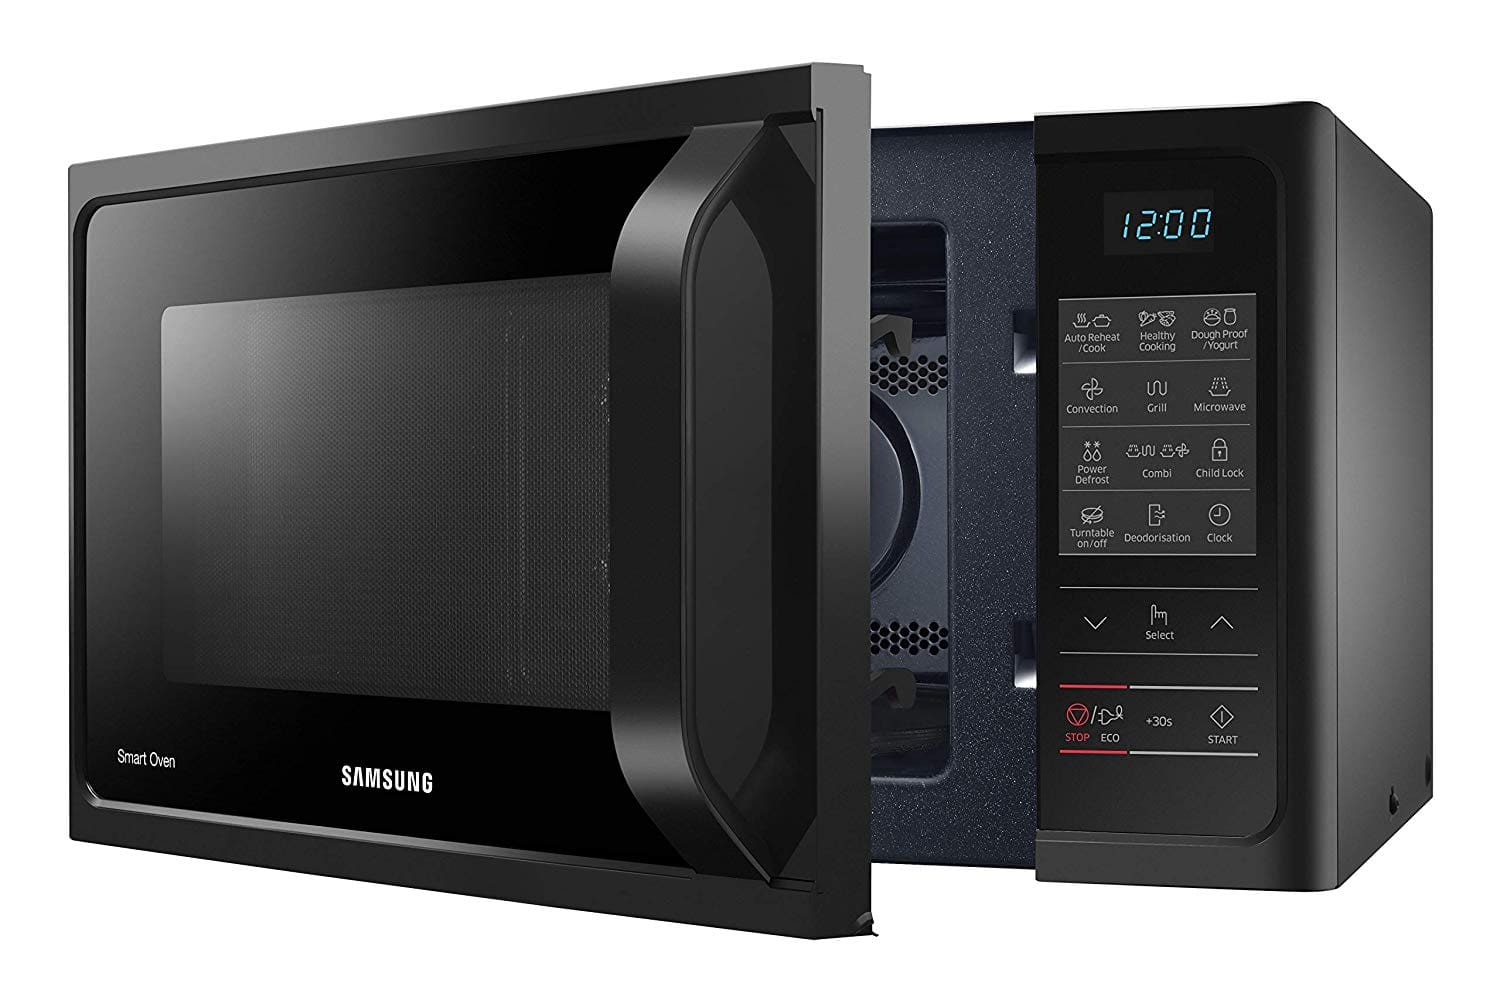 Samsung 28 L Convection Microwave Oven (Black)